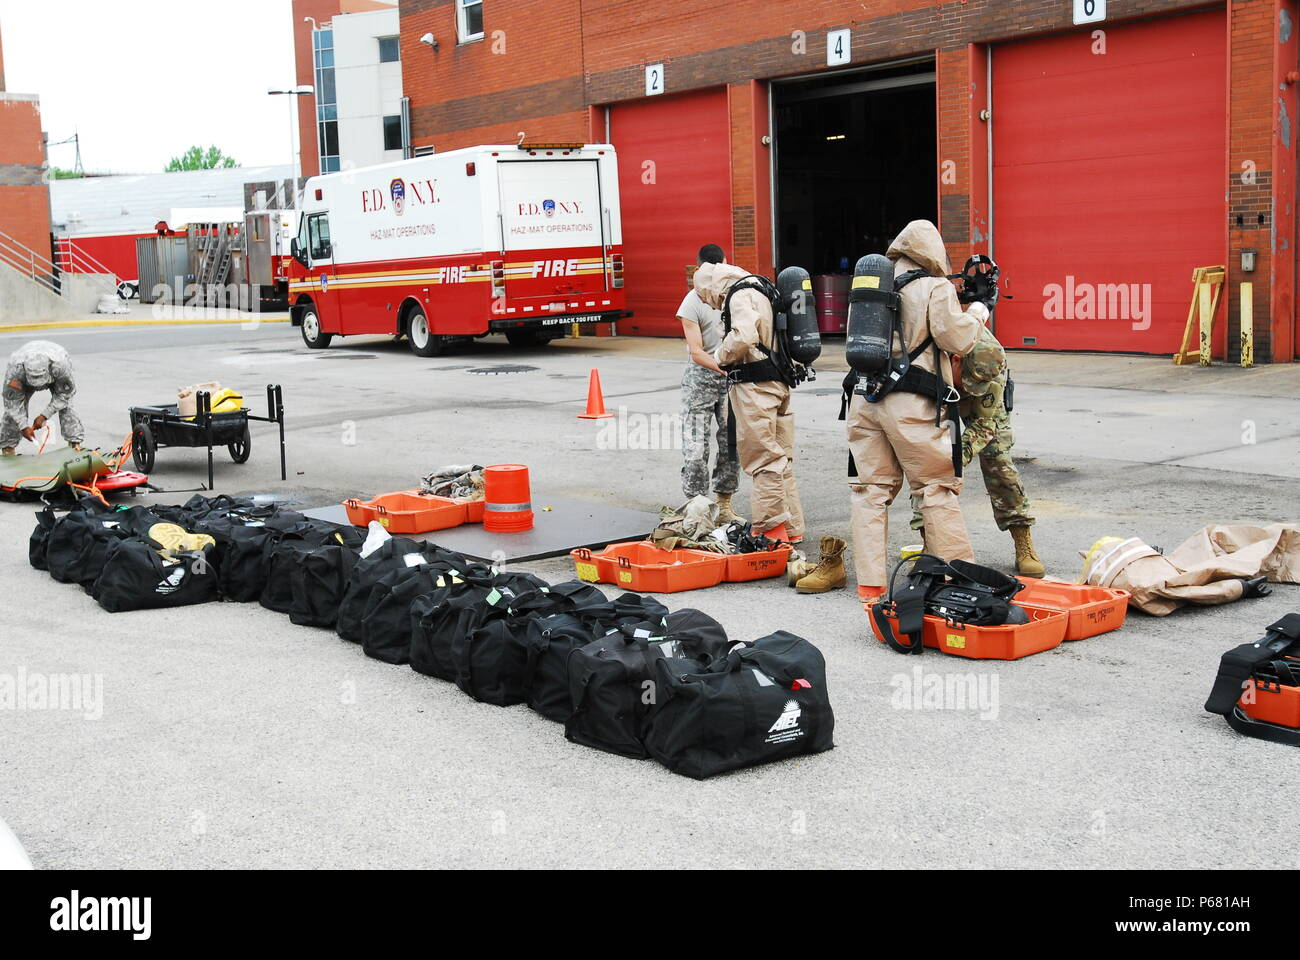 Members of the 59th Chemical, Biological, Radiological, Nuclear (CBRN) Company suit up for their Reconnaissance Sustainment Training with the New York Fire Department in New York City on May 18. As part of the training, the unit went through a series of familiarization exercises at the New York Fire Department Training Division's Facilities, which has an exact replica of a portion of the New York City subway. - Stock Image